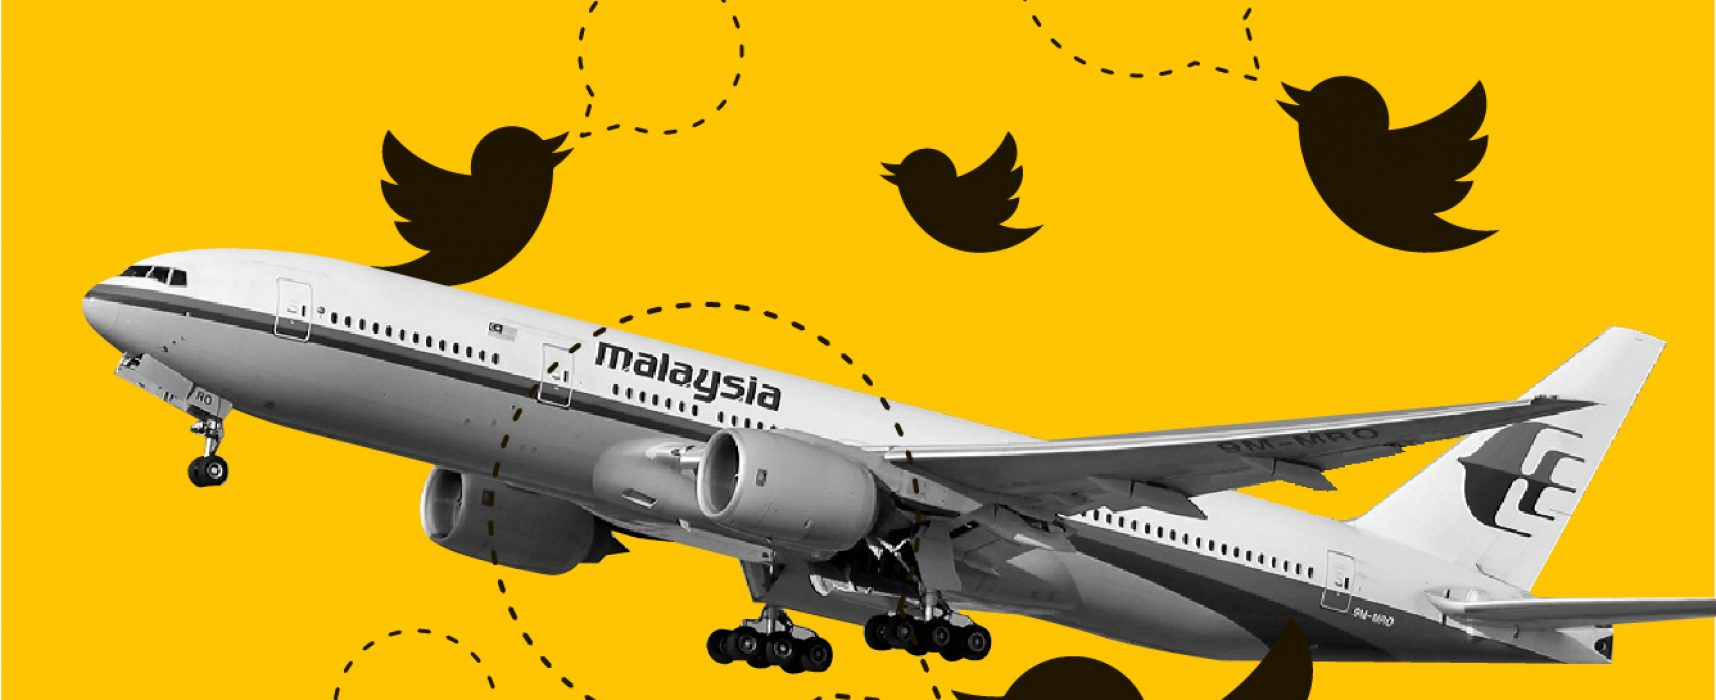 Truthers Against Tragedy: How Kremlin Fans Are Trying To Discredit the MH17 Investigation On Twitter